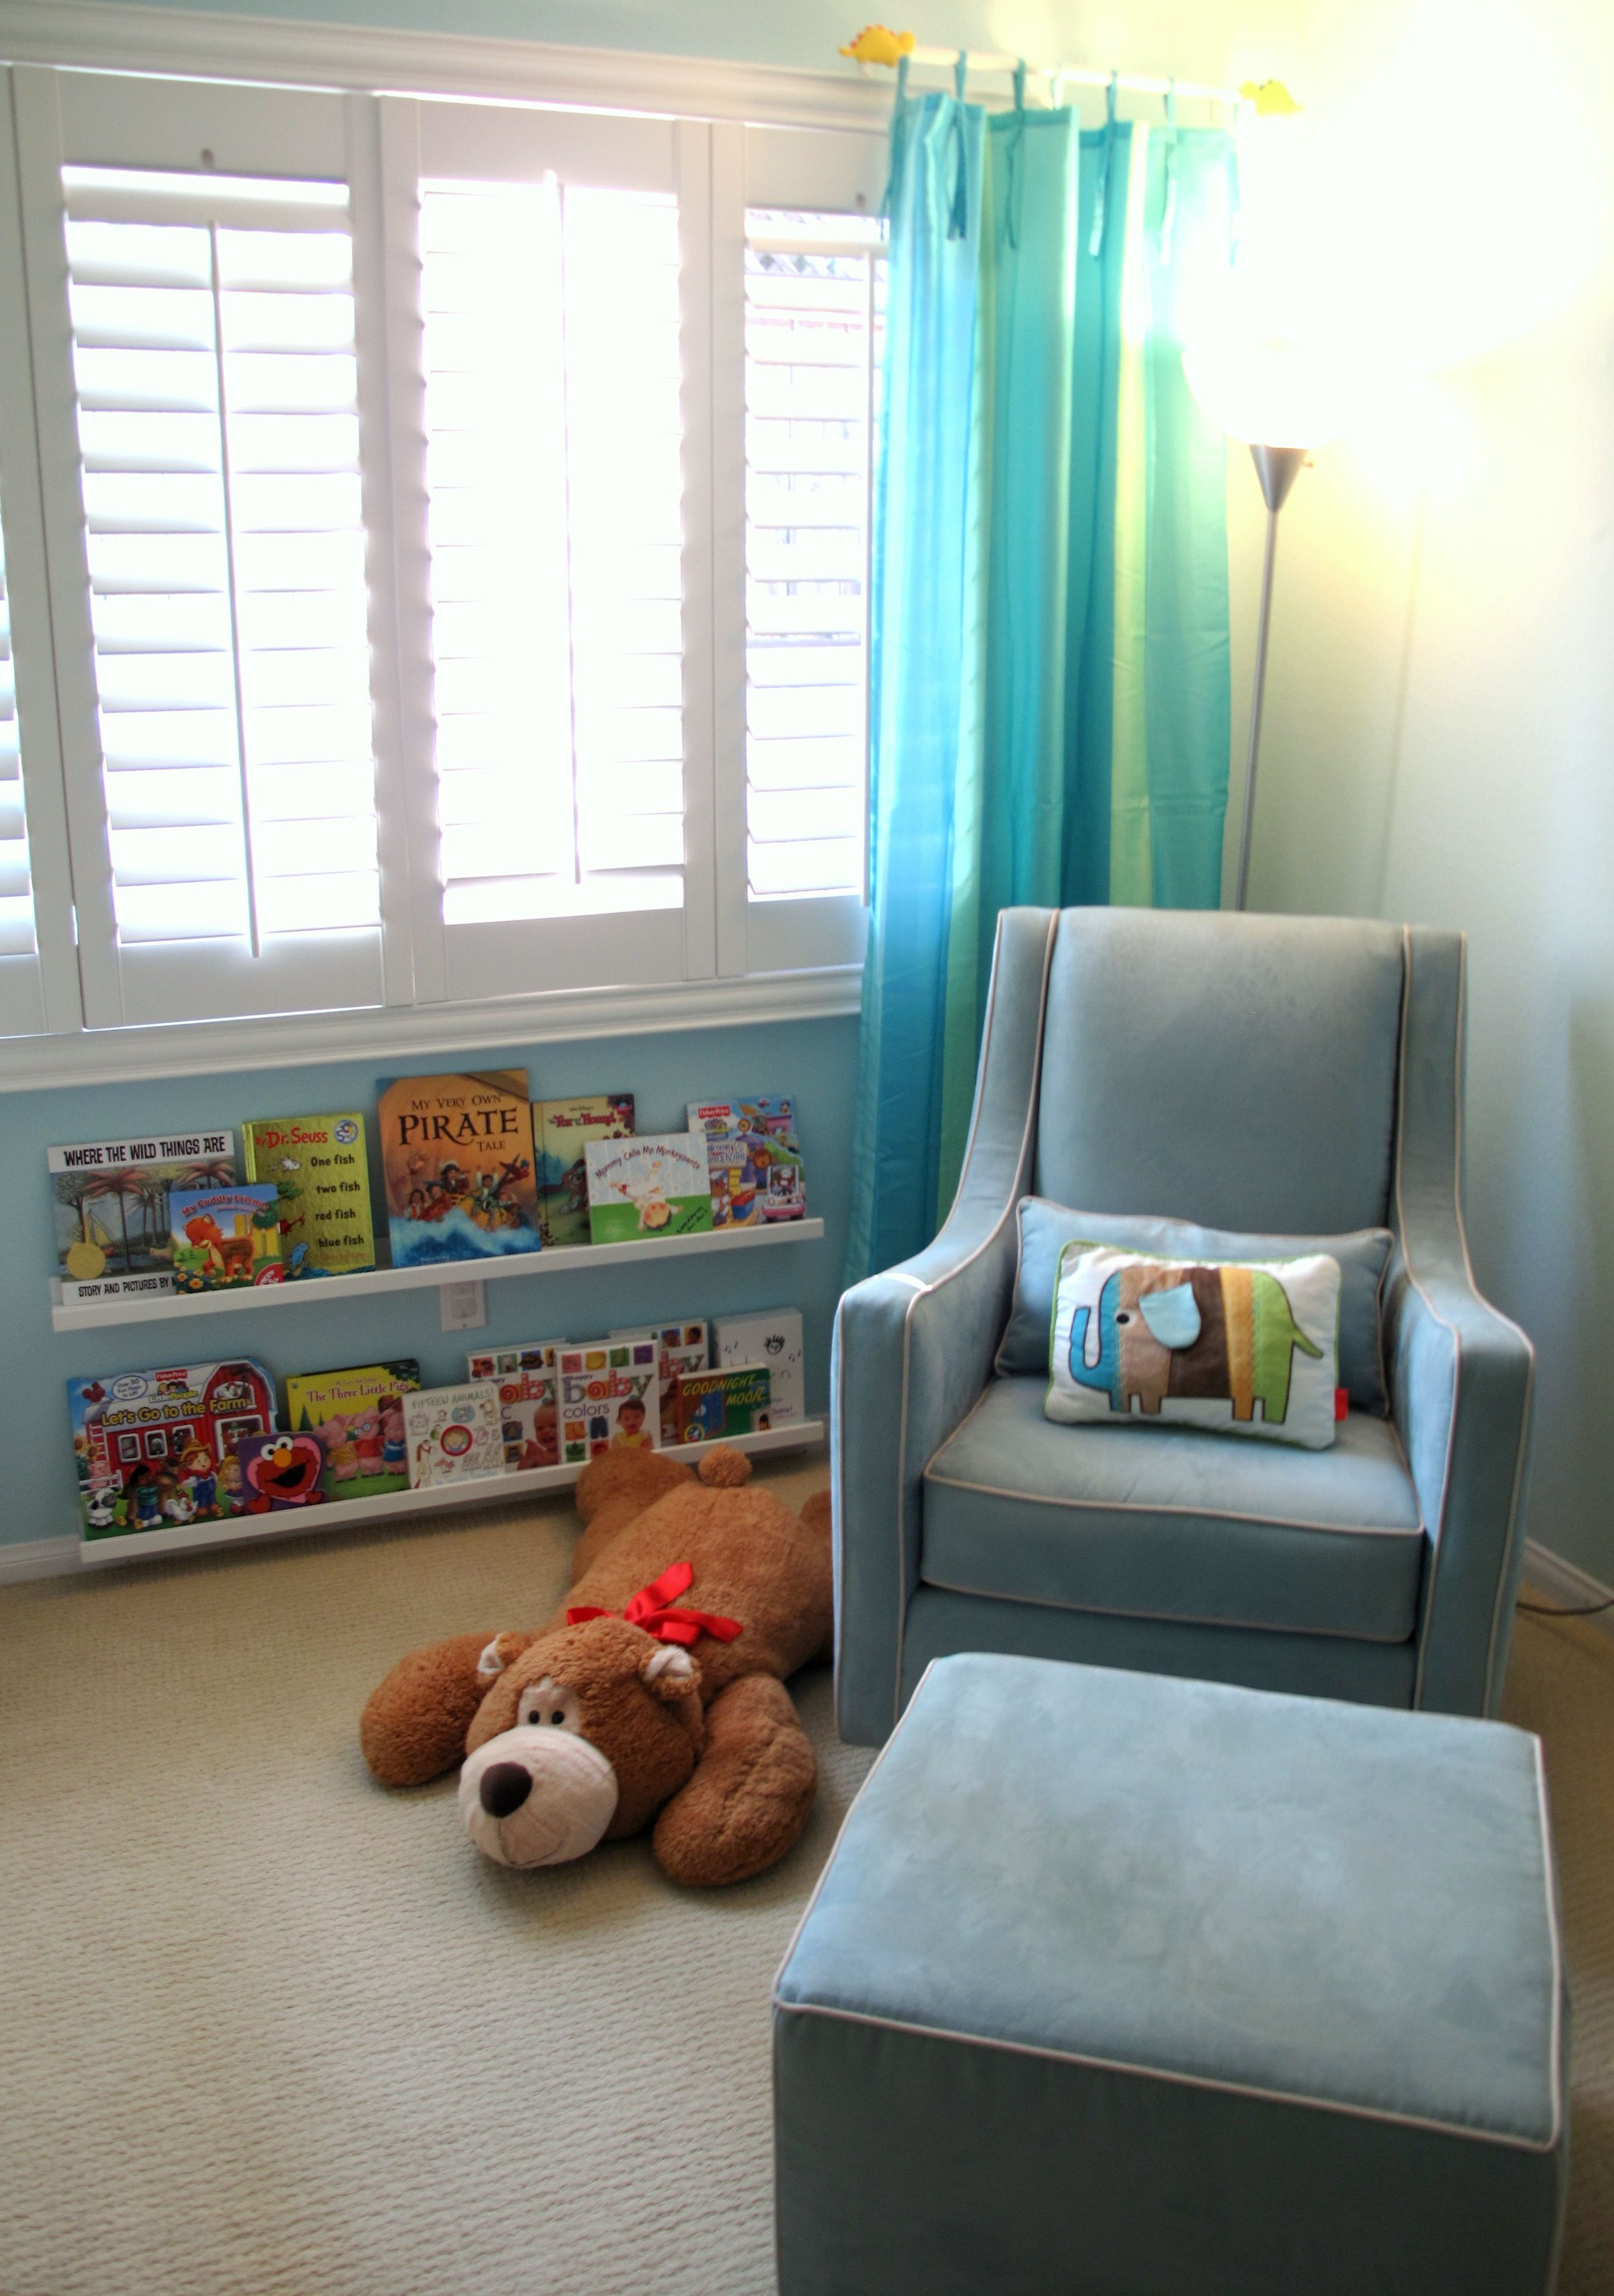 for the basement ikea ribba picture ledge turned book shelf from